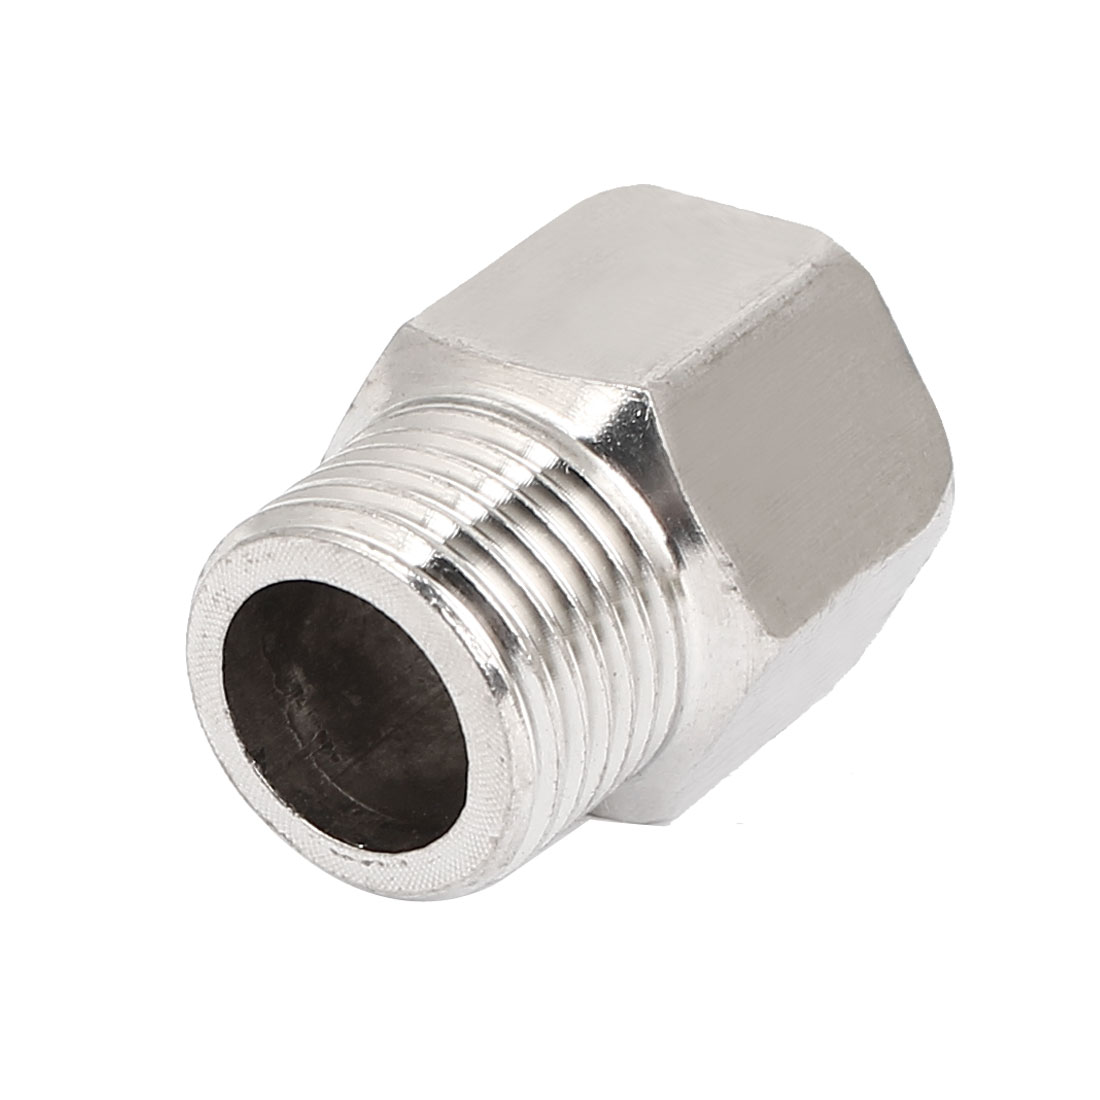 1/2BSP Female Male Thread Steel Pipe Fitting Connector Silver Tone 32mm Length